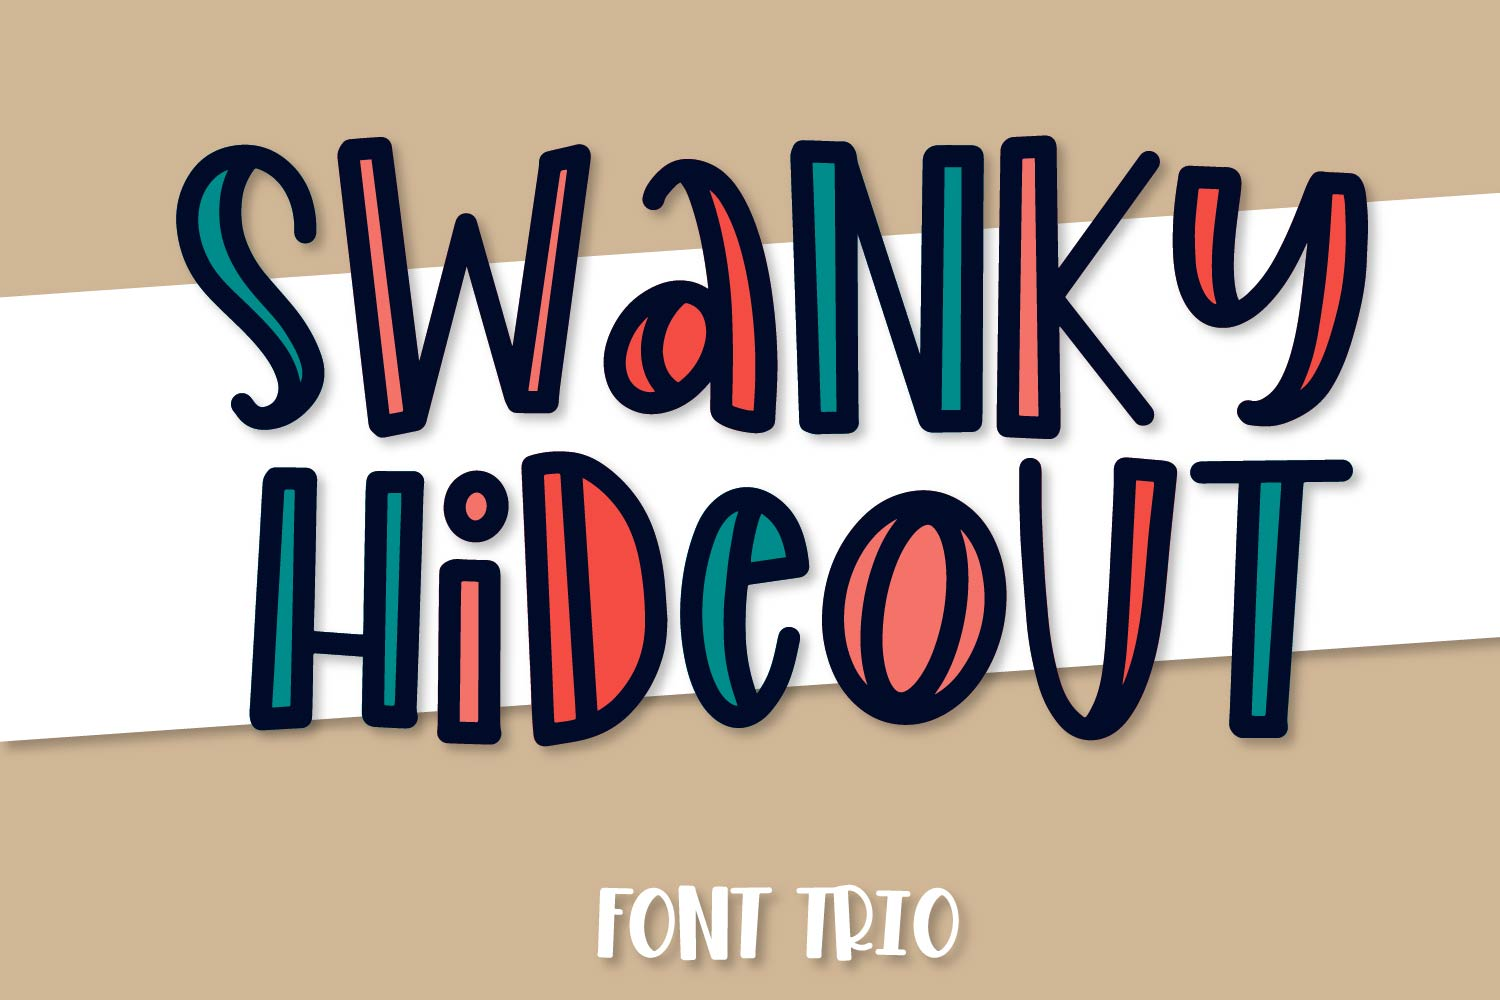 Swanky Hideout - A Font Trio example image 1